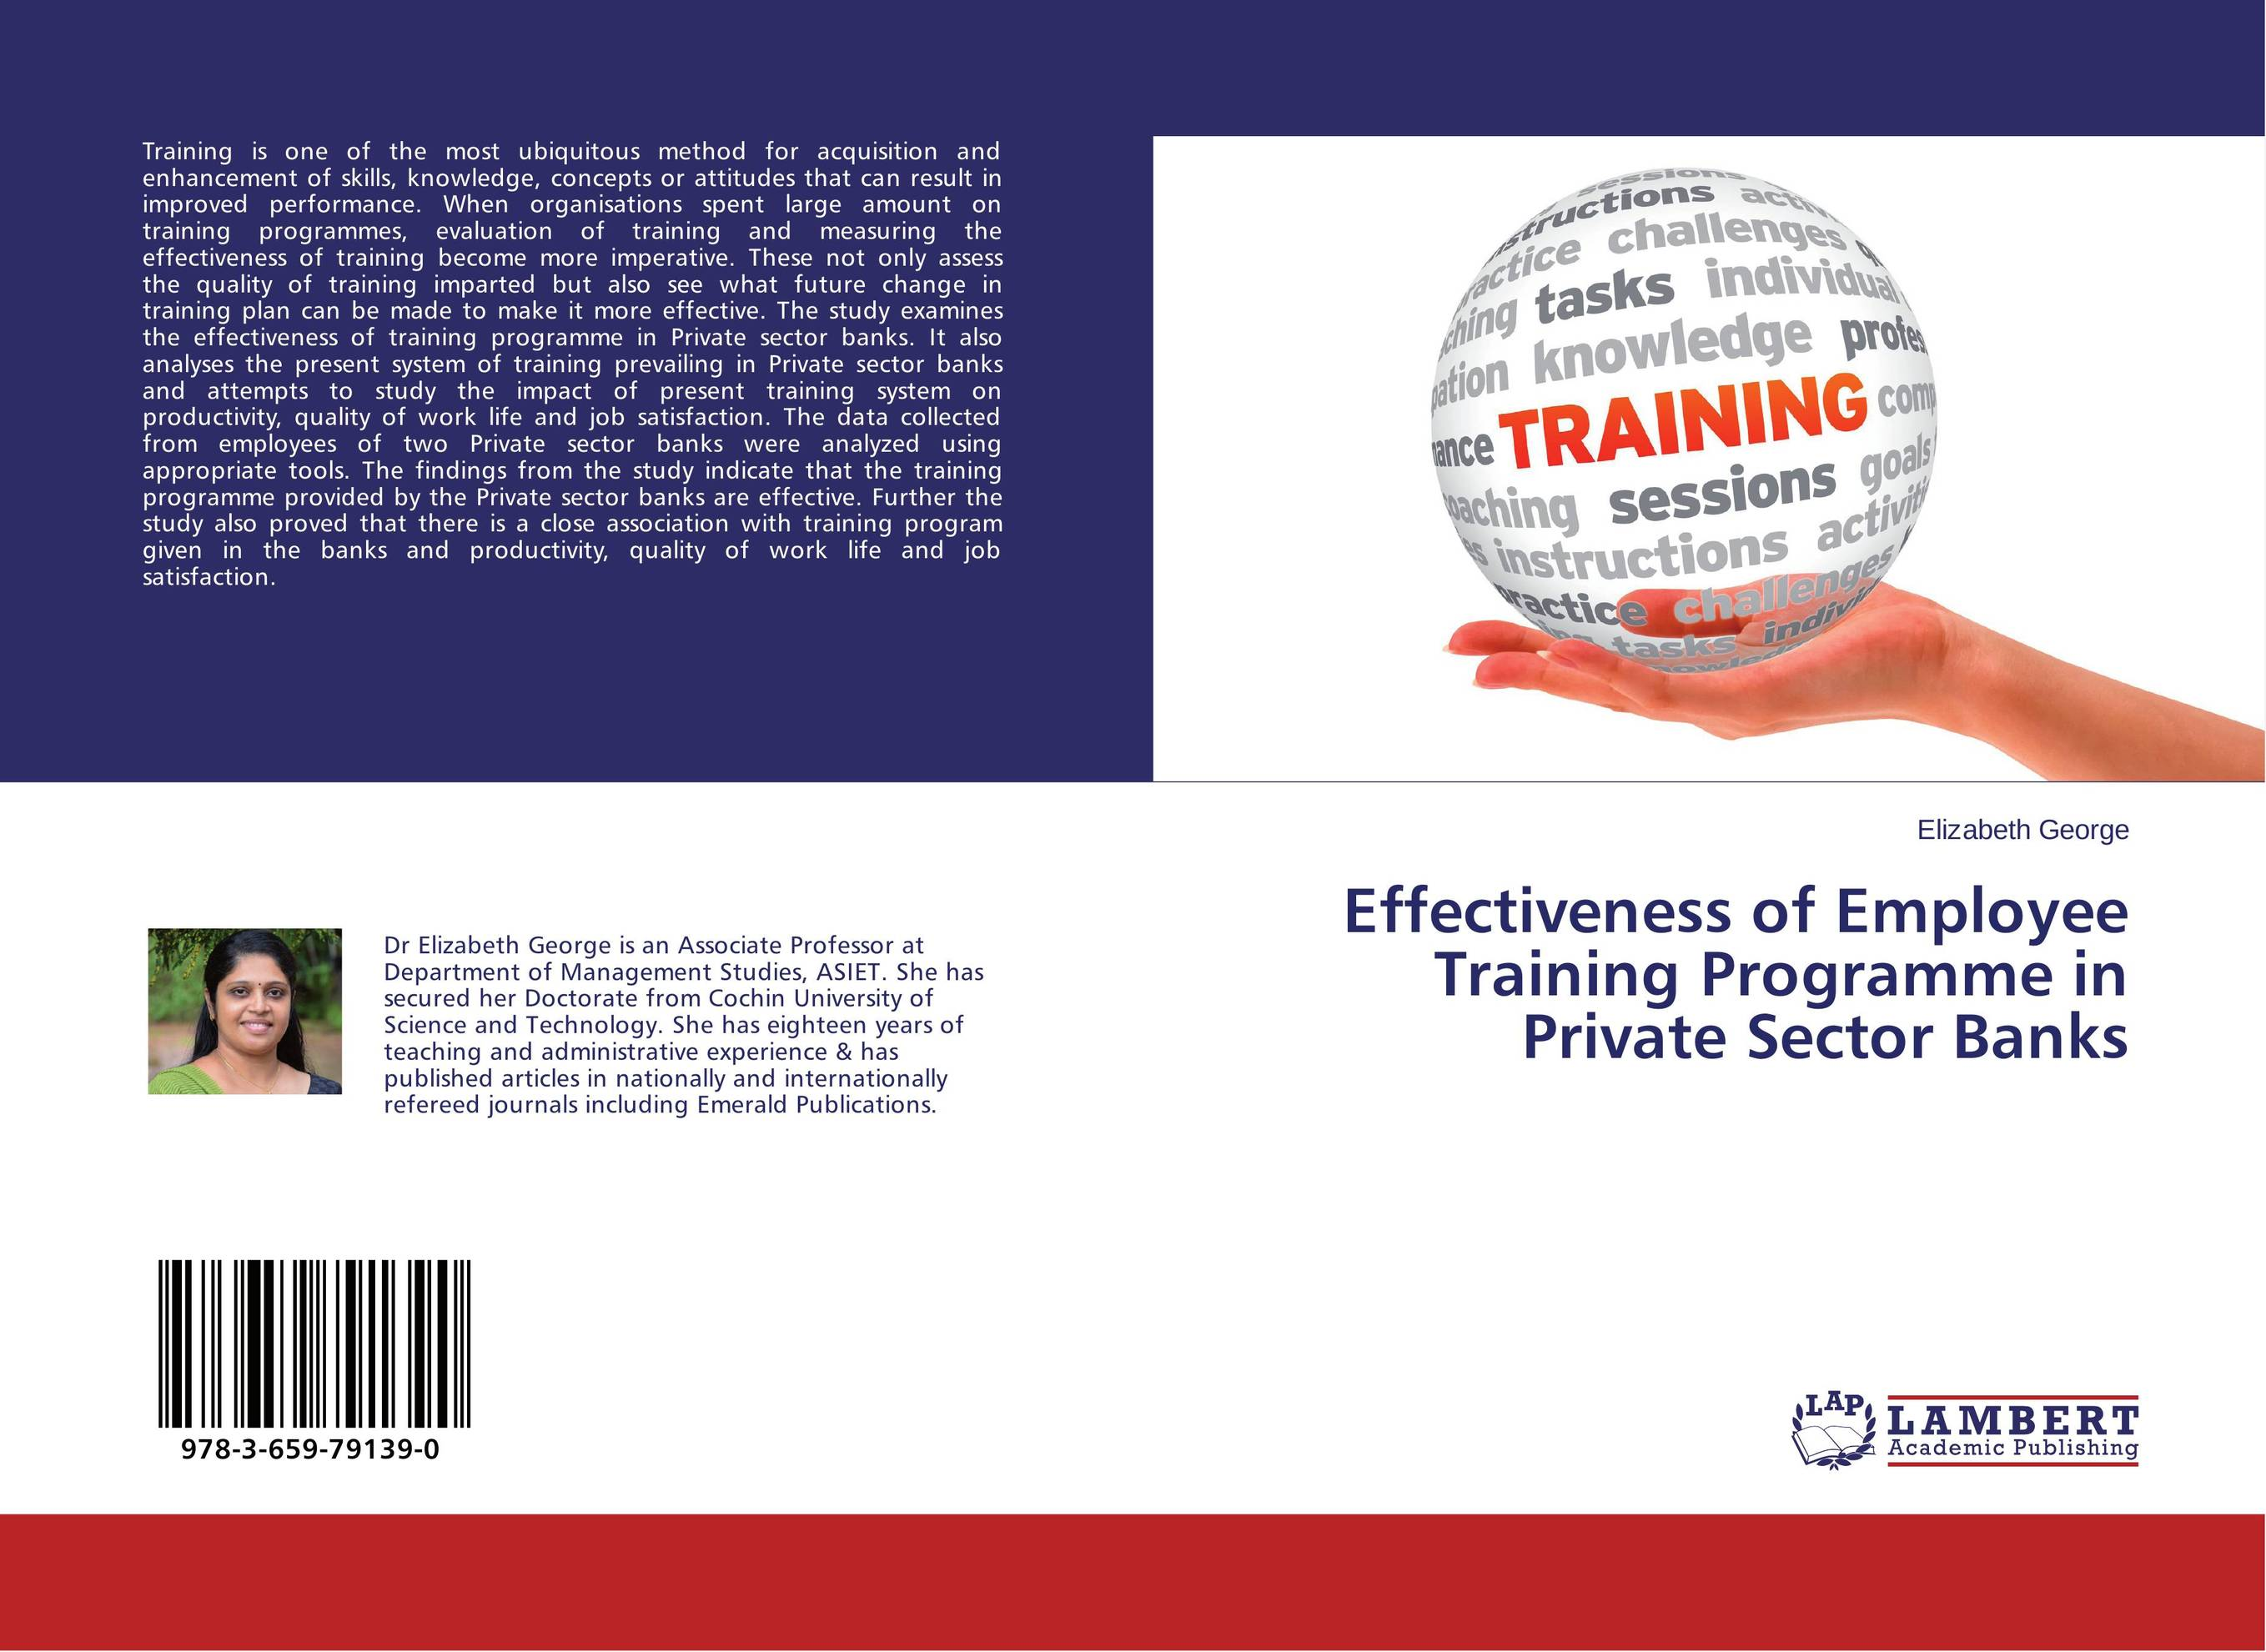 Effectiveness of Employee Training Programme in Private Sector Banks technology based employee training and organizational performance